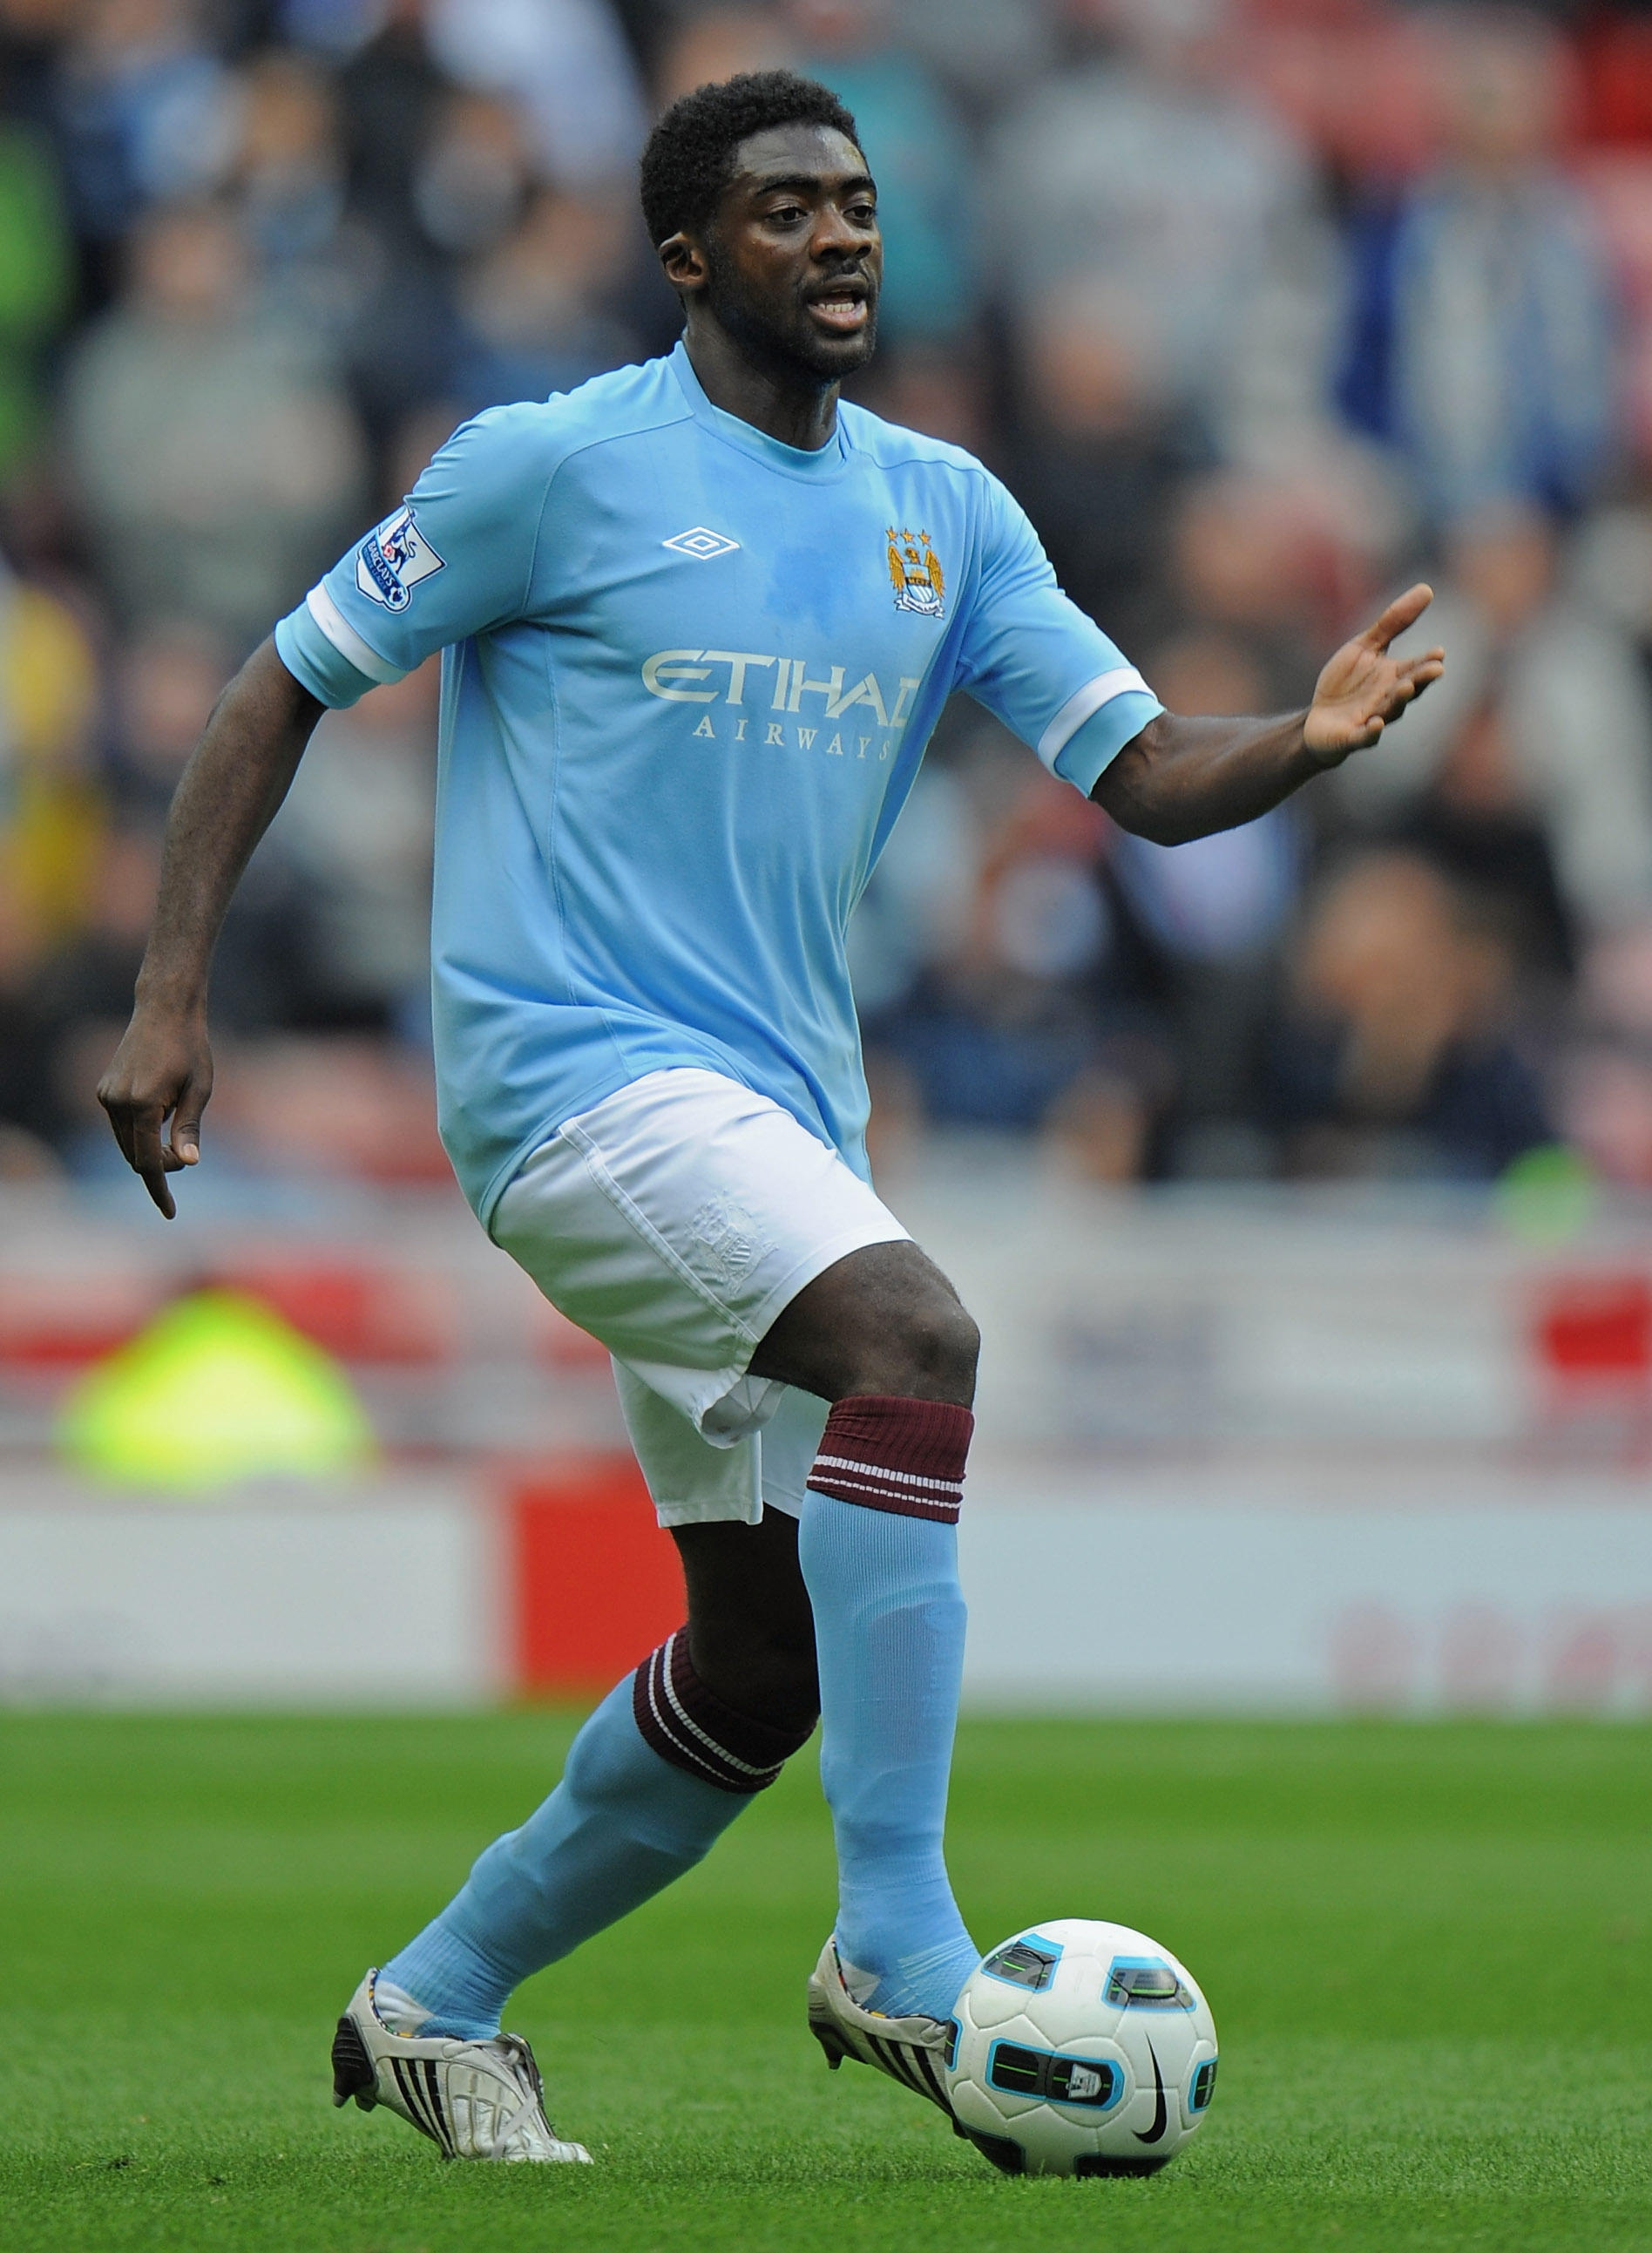 SUNDERLAND, ENGLAND - AUGUST 29:  Kolo Toure of Manchester City in action during the Barclays Premier League match between Sunderland and Manchester City at the Stadium of Light on August 29, 2010 in Sunderland, England.  (Photo by Michael Regan/Getty Ima